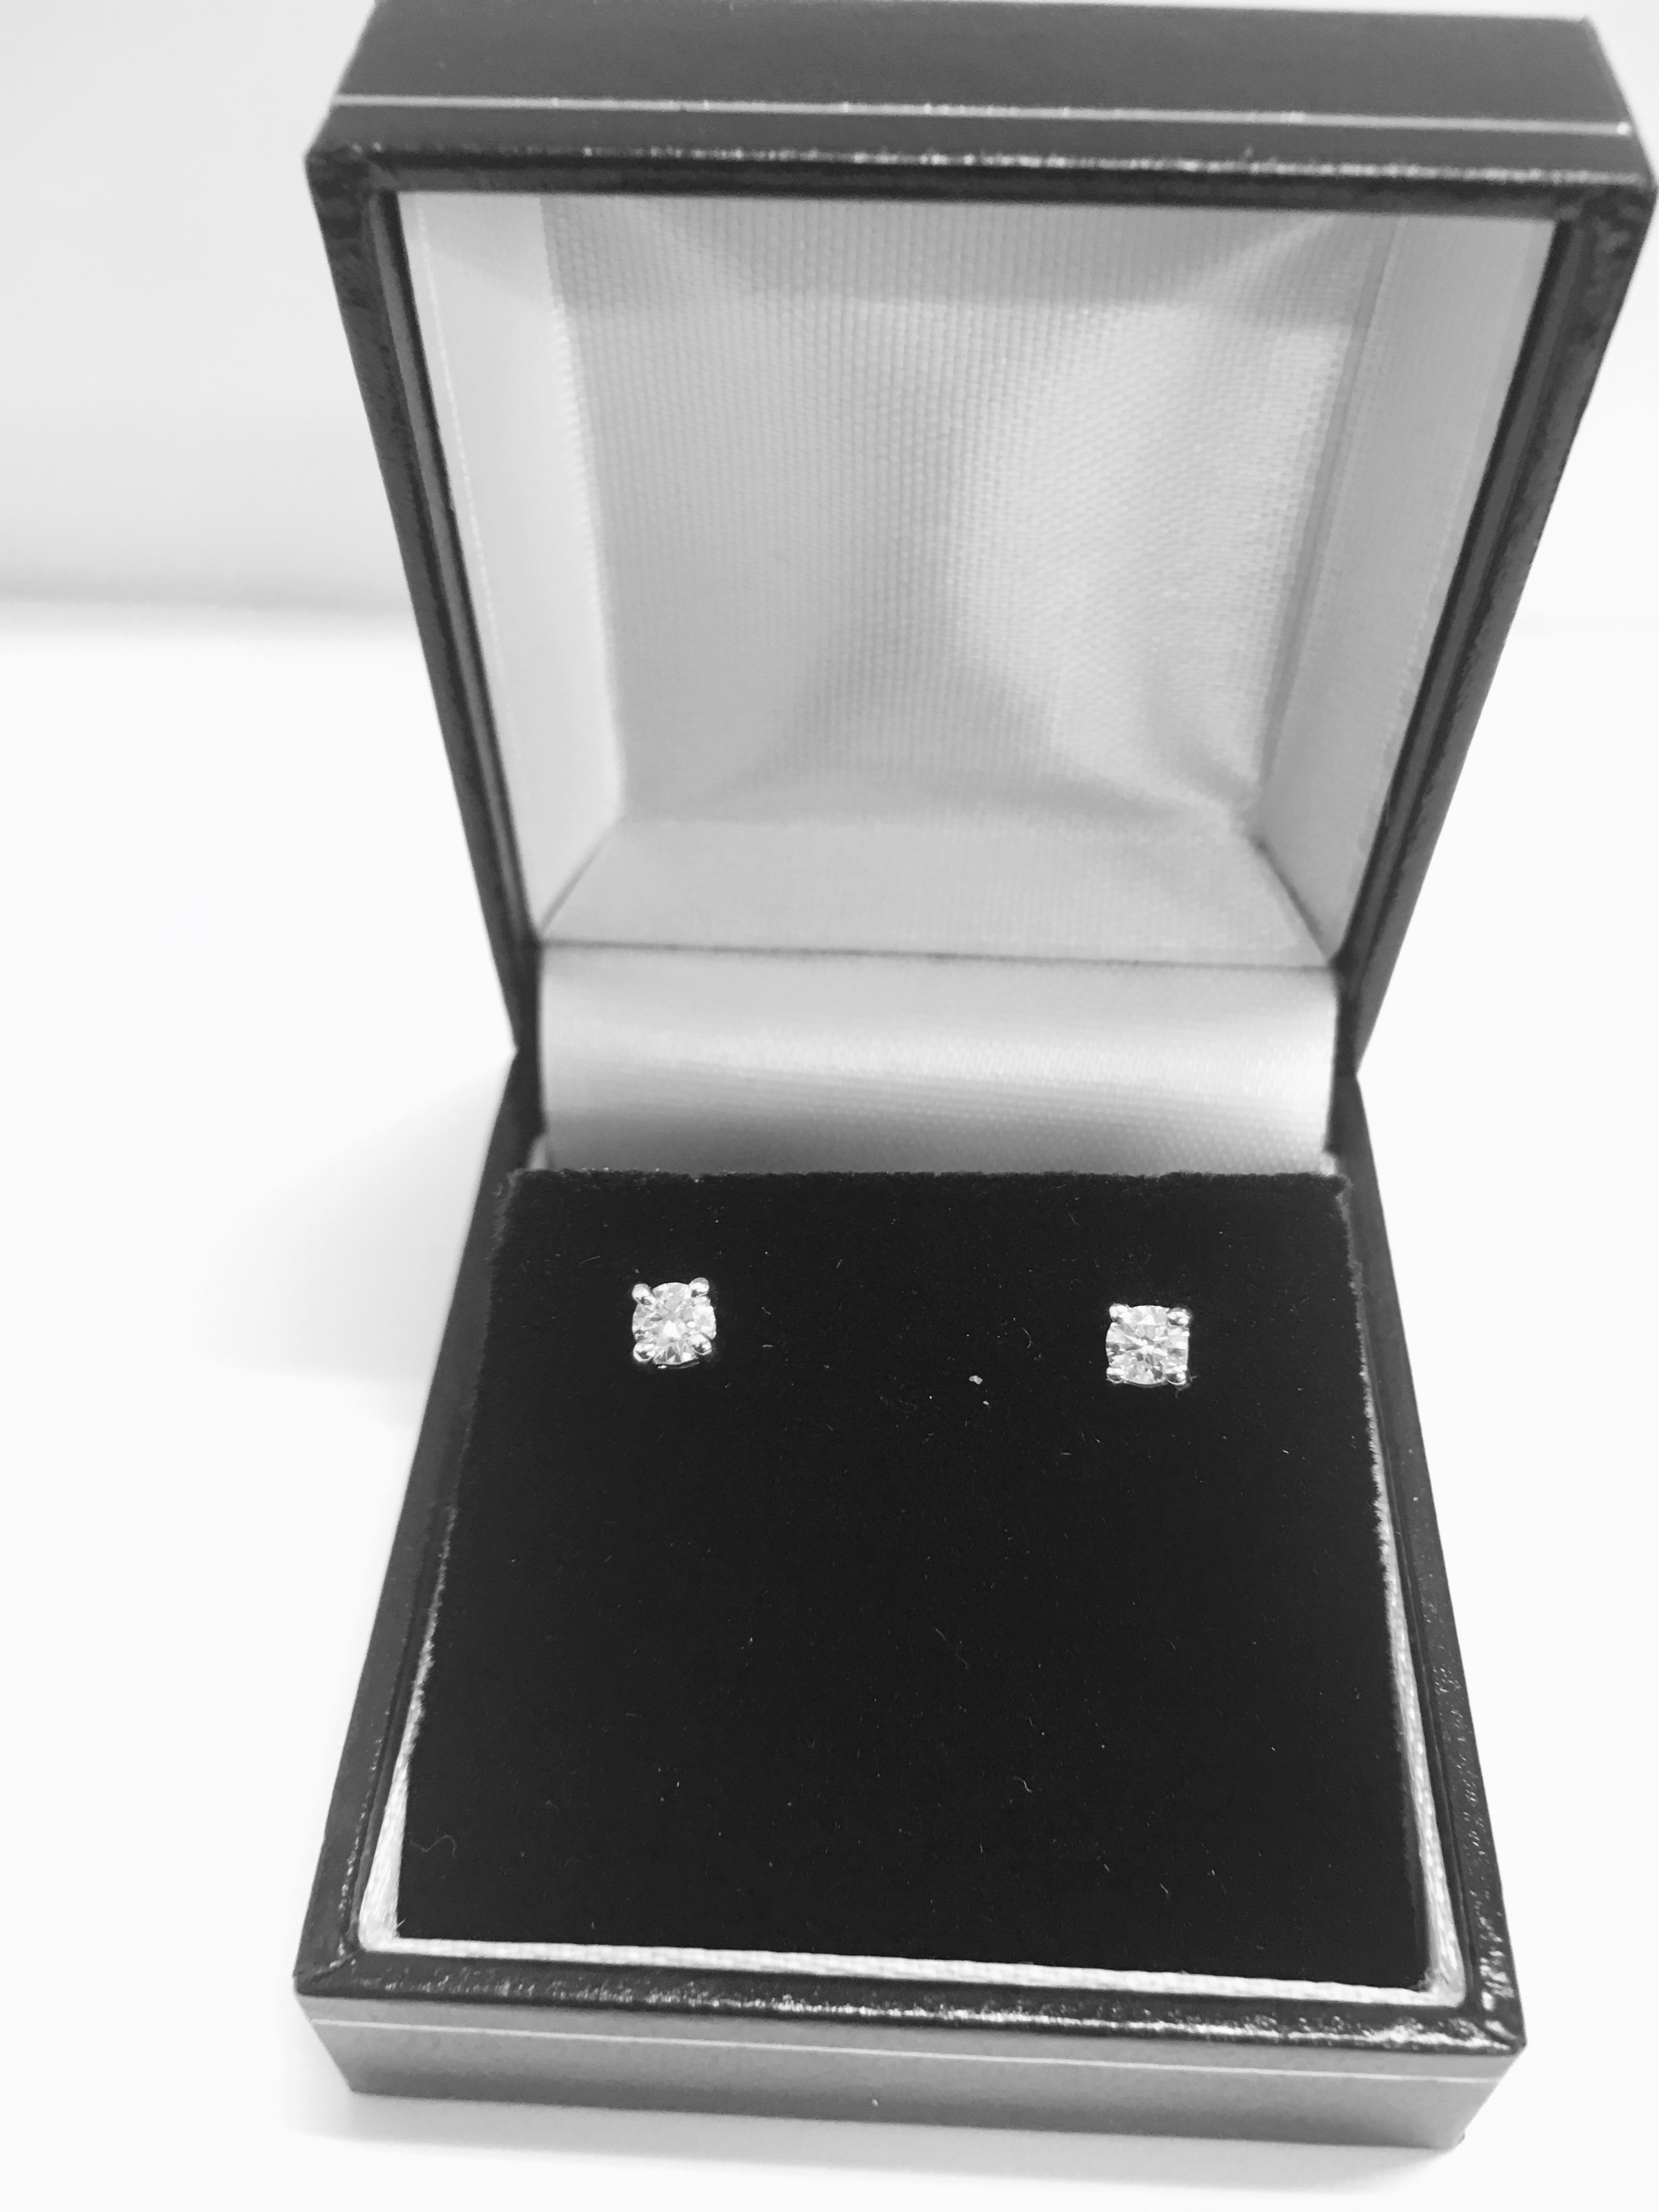 Lot 1 - 0.10ct Solitaire diamond stud earrings set with brilliant cut diamonds, i1 clarity and I colour. Set